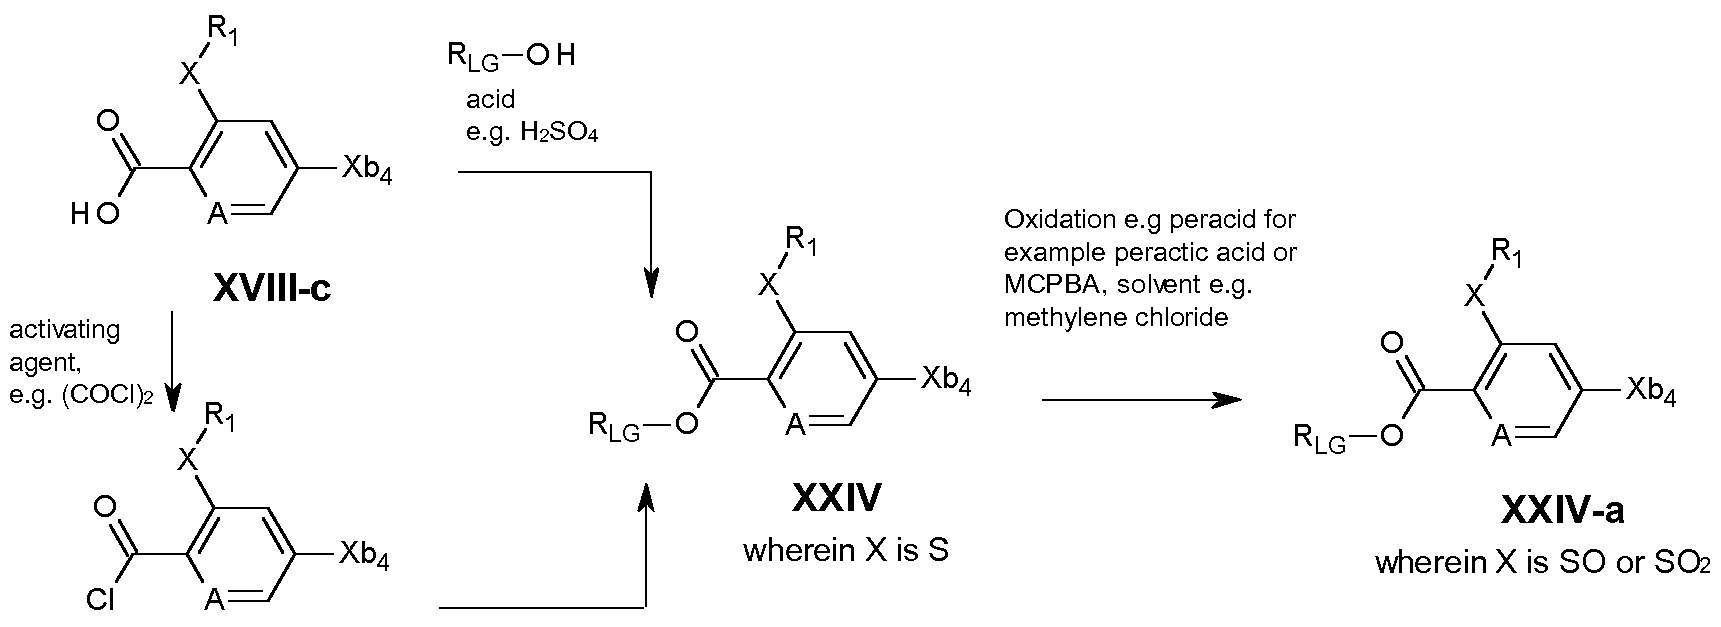 Wo2016096584a1 Pesticidally Active Heterocyclic Derivatives With Hendeca 11 Soft Electronic Circuits You Can Build Including Crossing Figure Imgf000022 0001